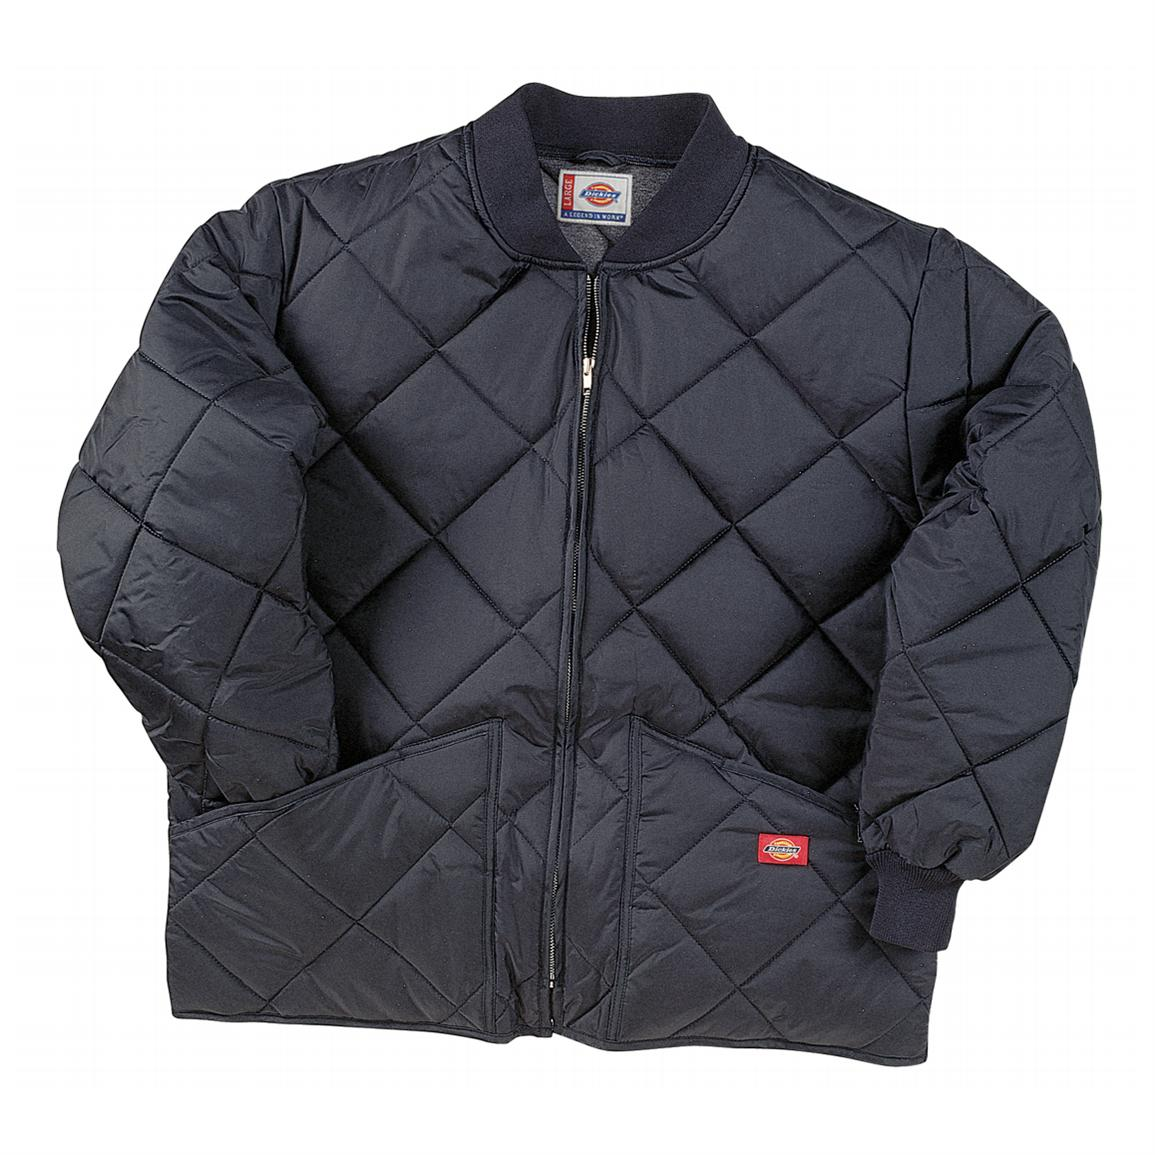 Dickies 174 Diamond Quilted Nylon Jacket Tall 188374